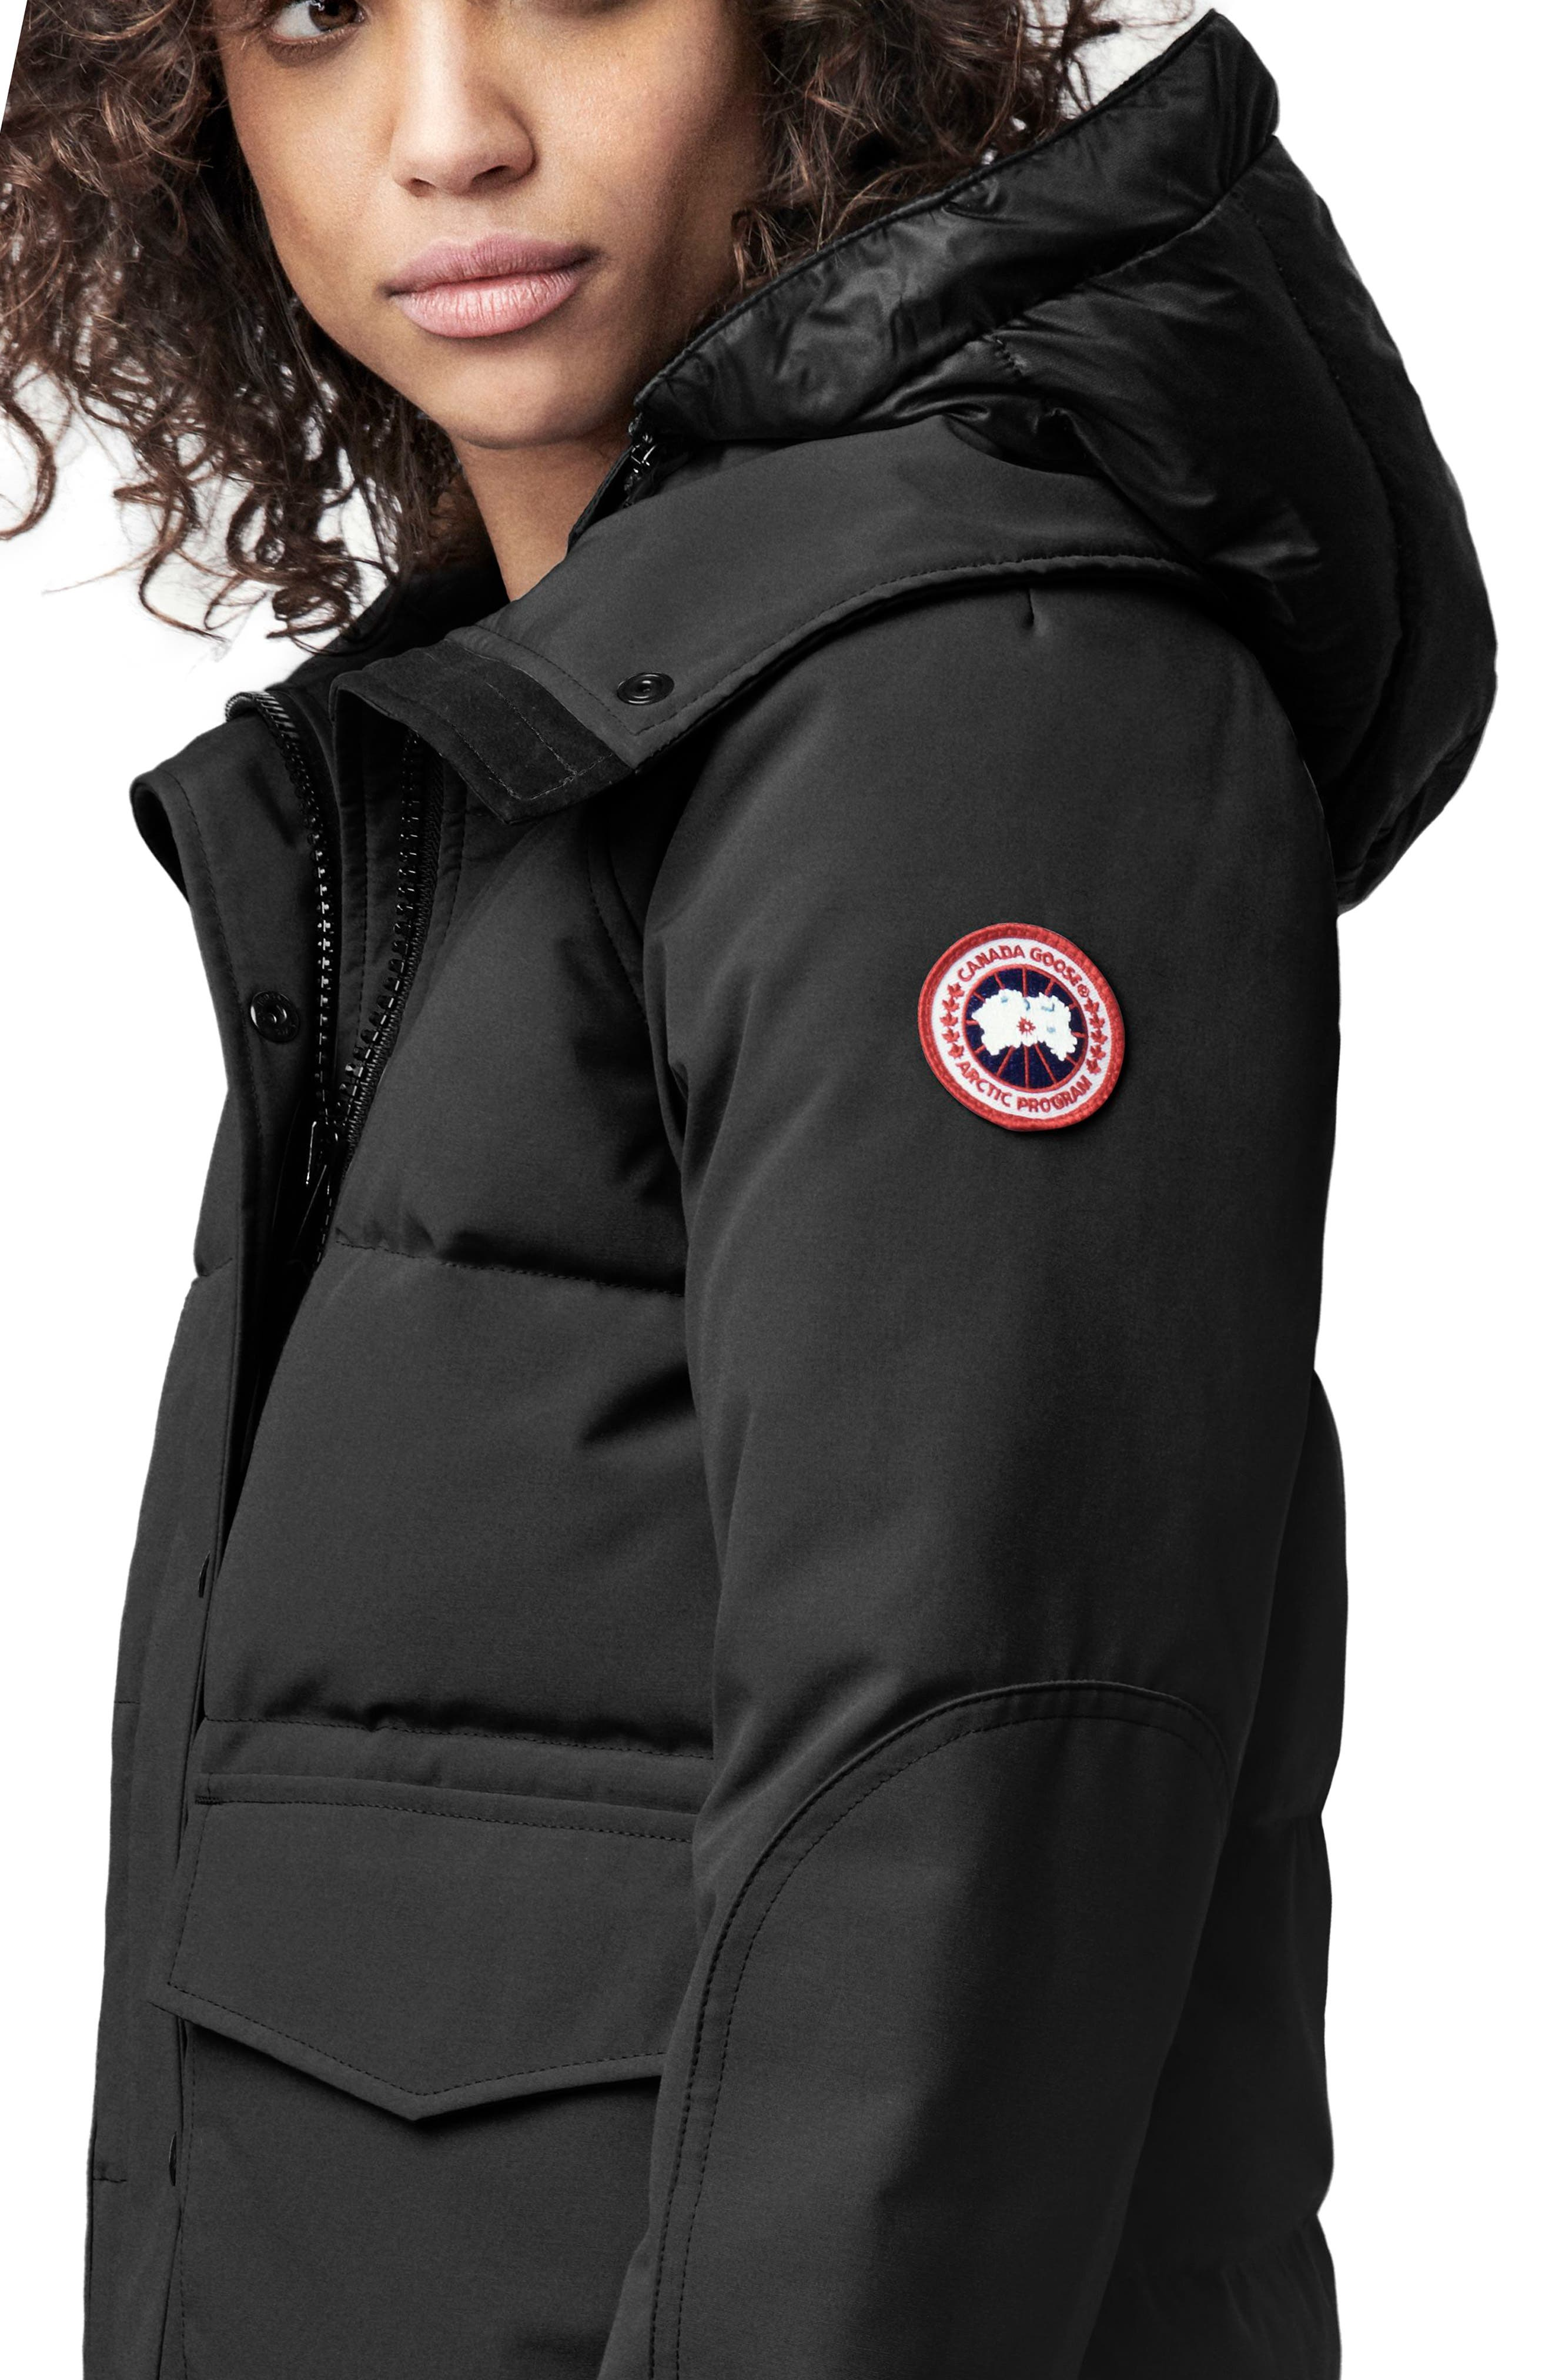 CANADA GOOSE, Deep Cove Arctic Tech Water Resistant 625 Fill Power Down Bomber Jacket, Alternate thumbnail 2, color, BLACK